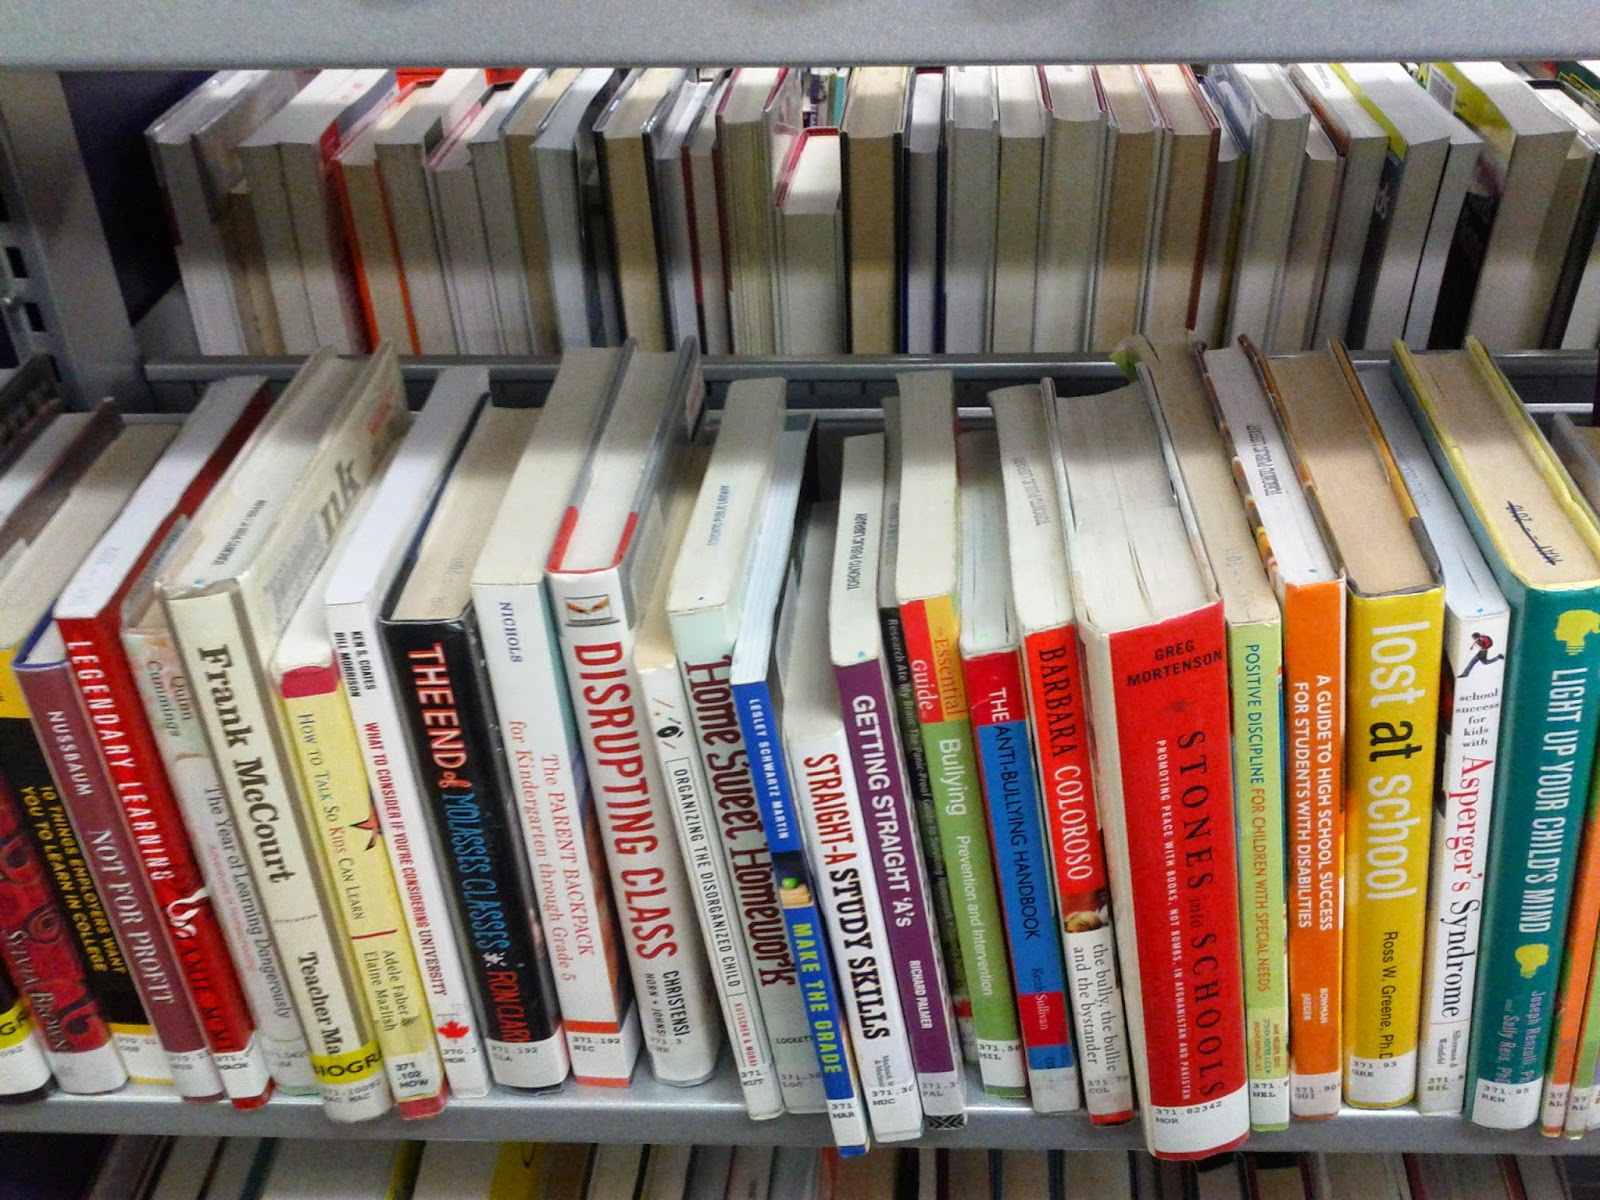 Stock photo: Library books and DVDs